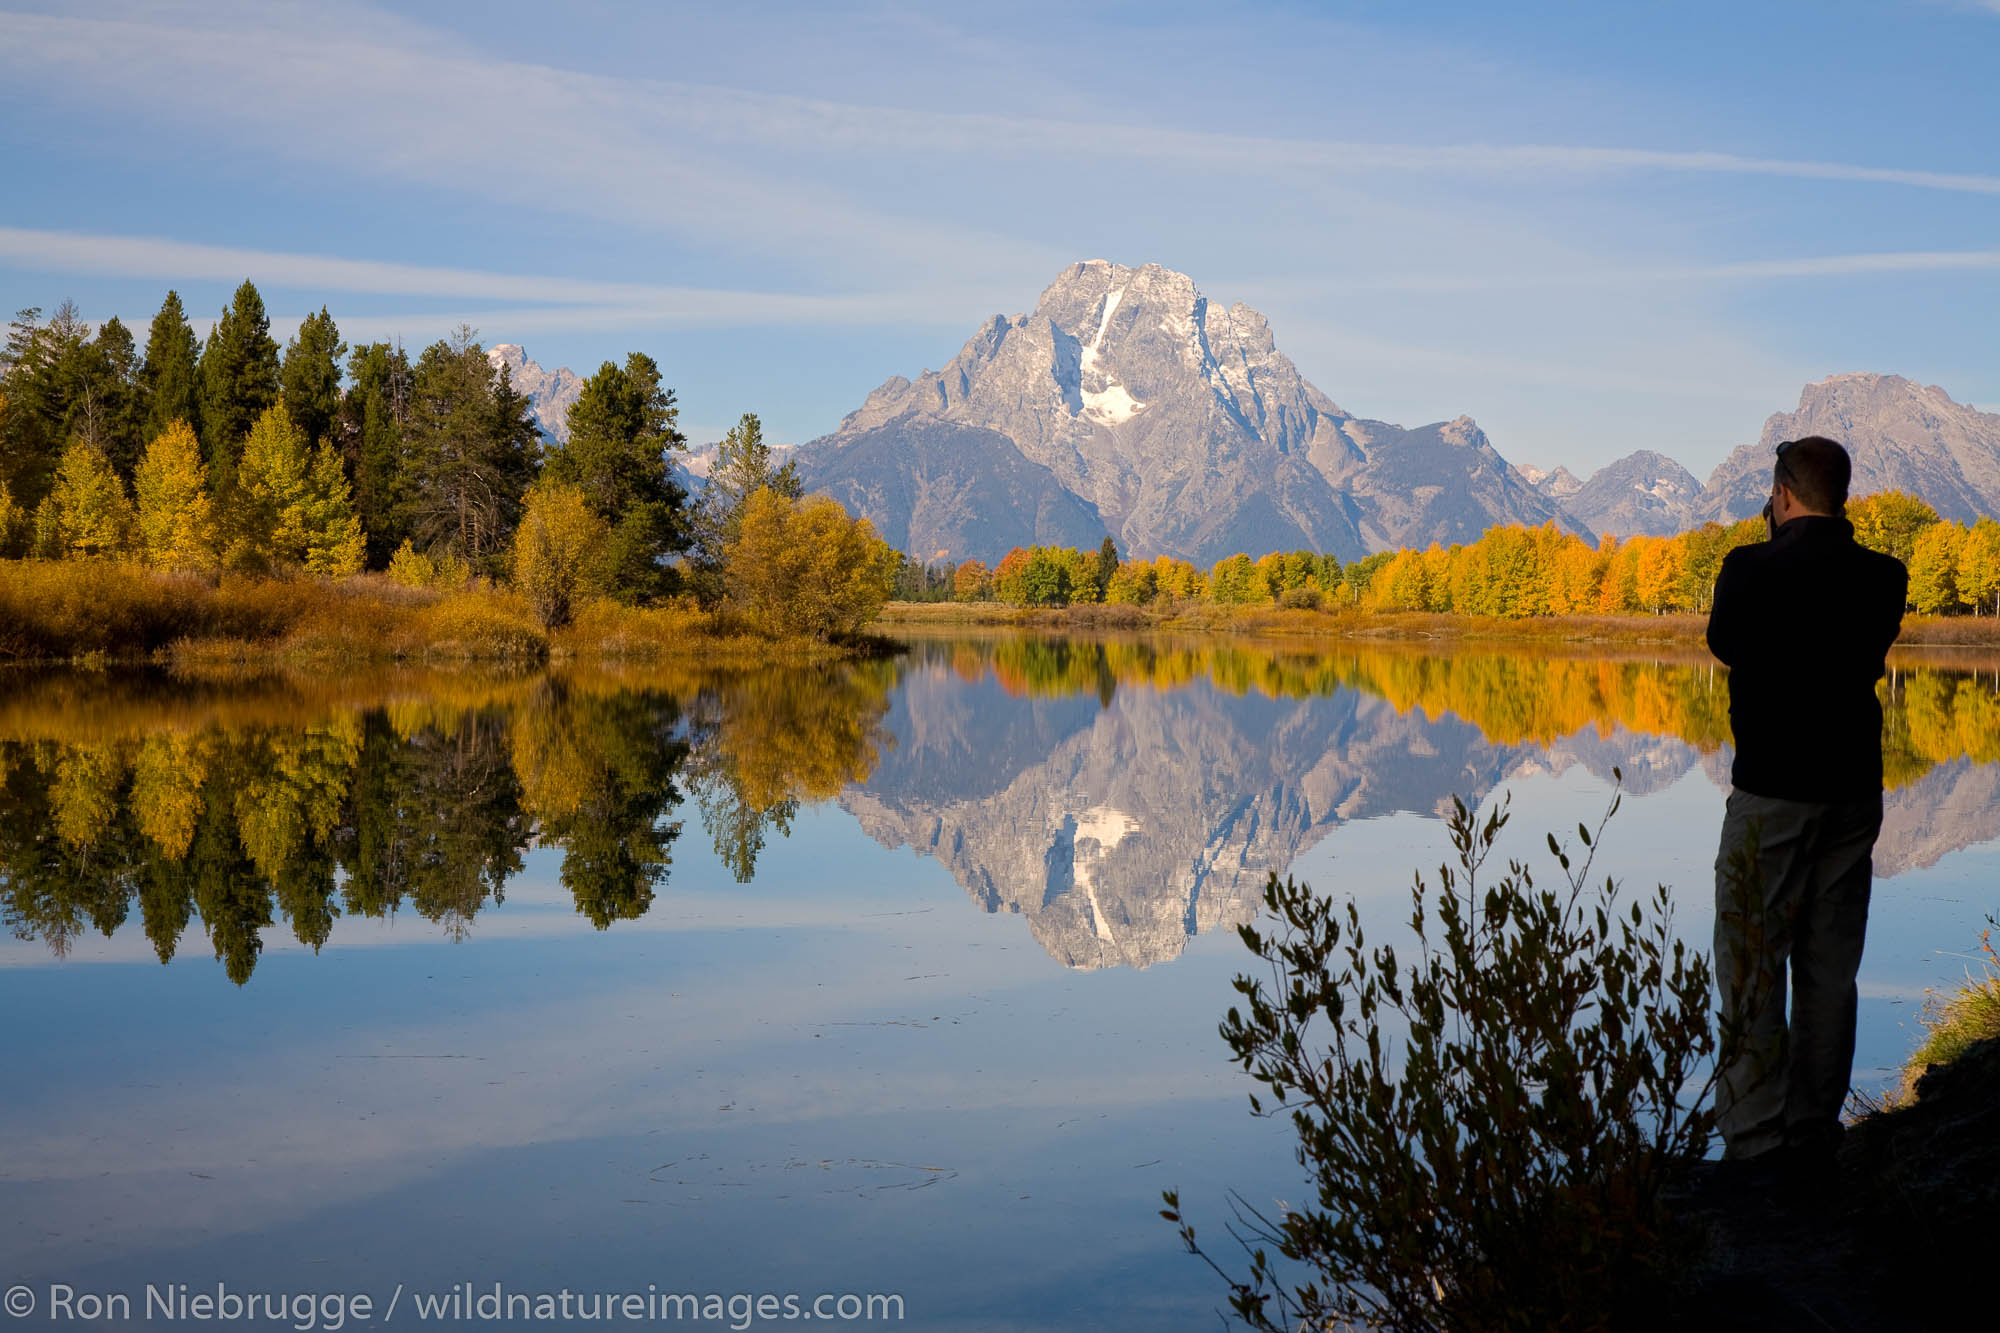 A visitor takes a picture of Mount Moran from Oxbow Bend, Grand Teton National Park, Wyoming.